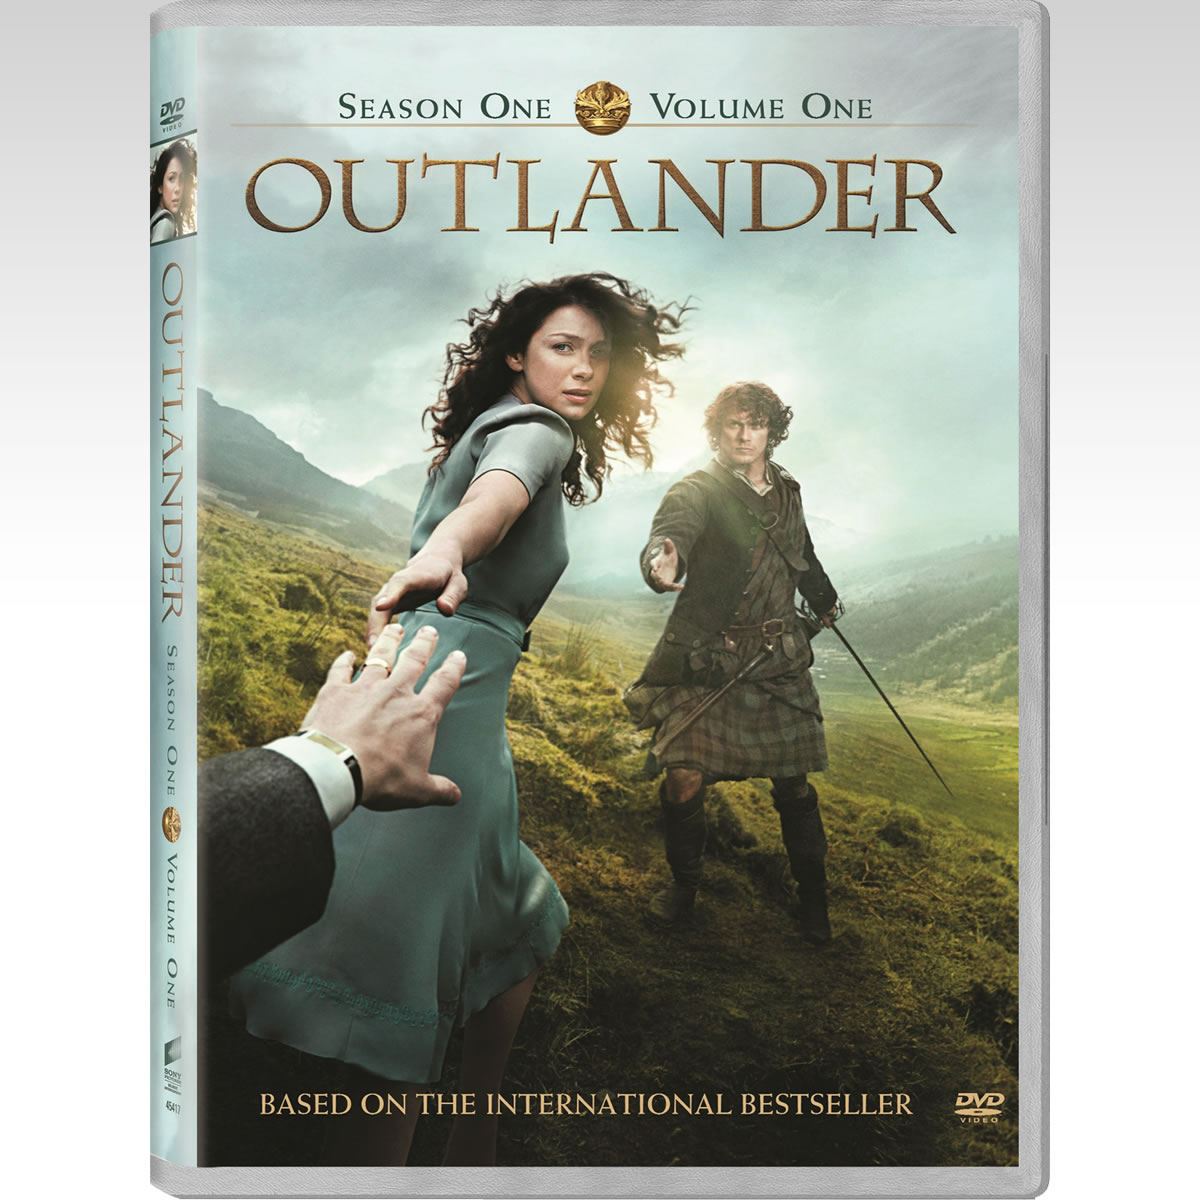 OUTLANDER 1st SEASON - OUTLANDER 1ος ΚΥΚΛΟΣ (6 DVDs)